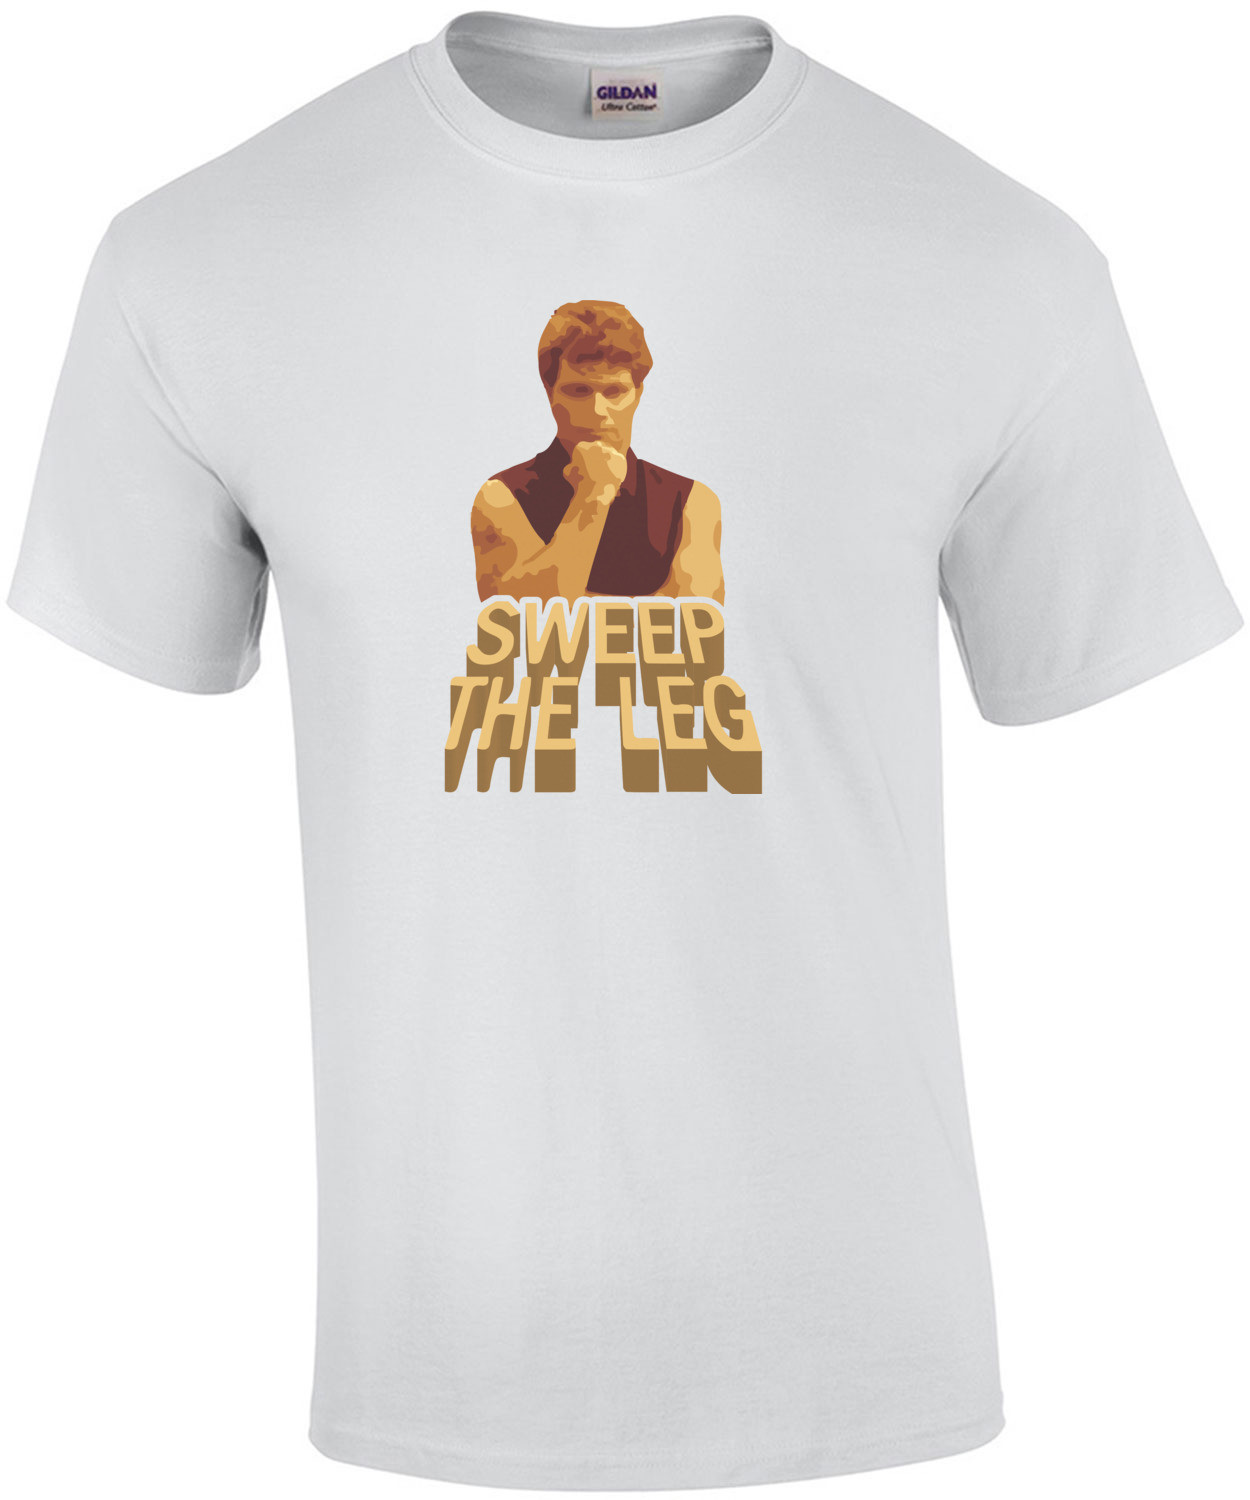 Sweep The Leg - Karate Kid T-shirt